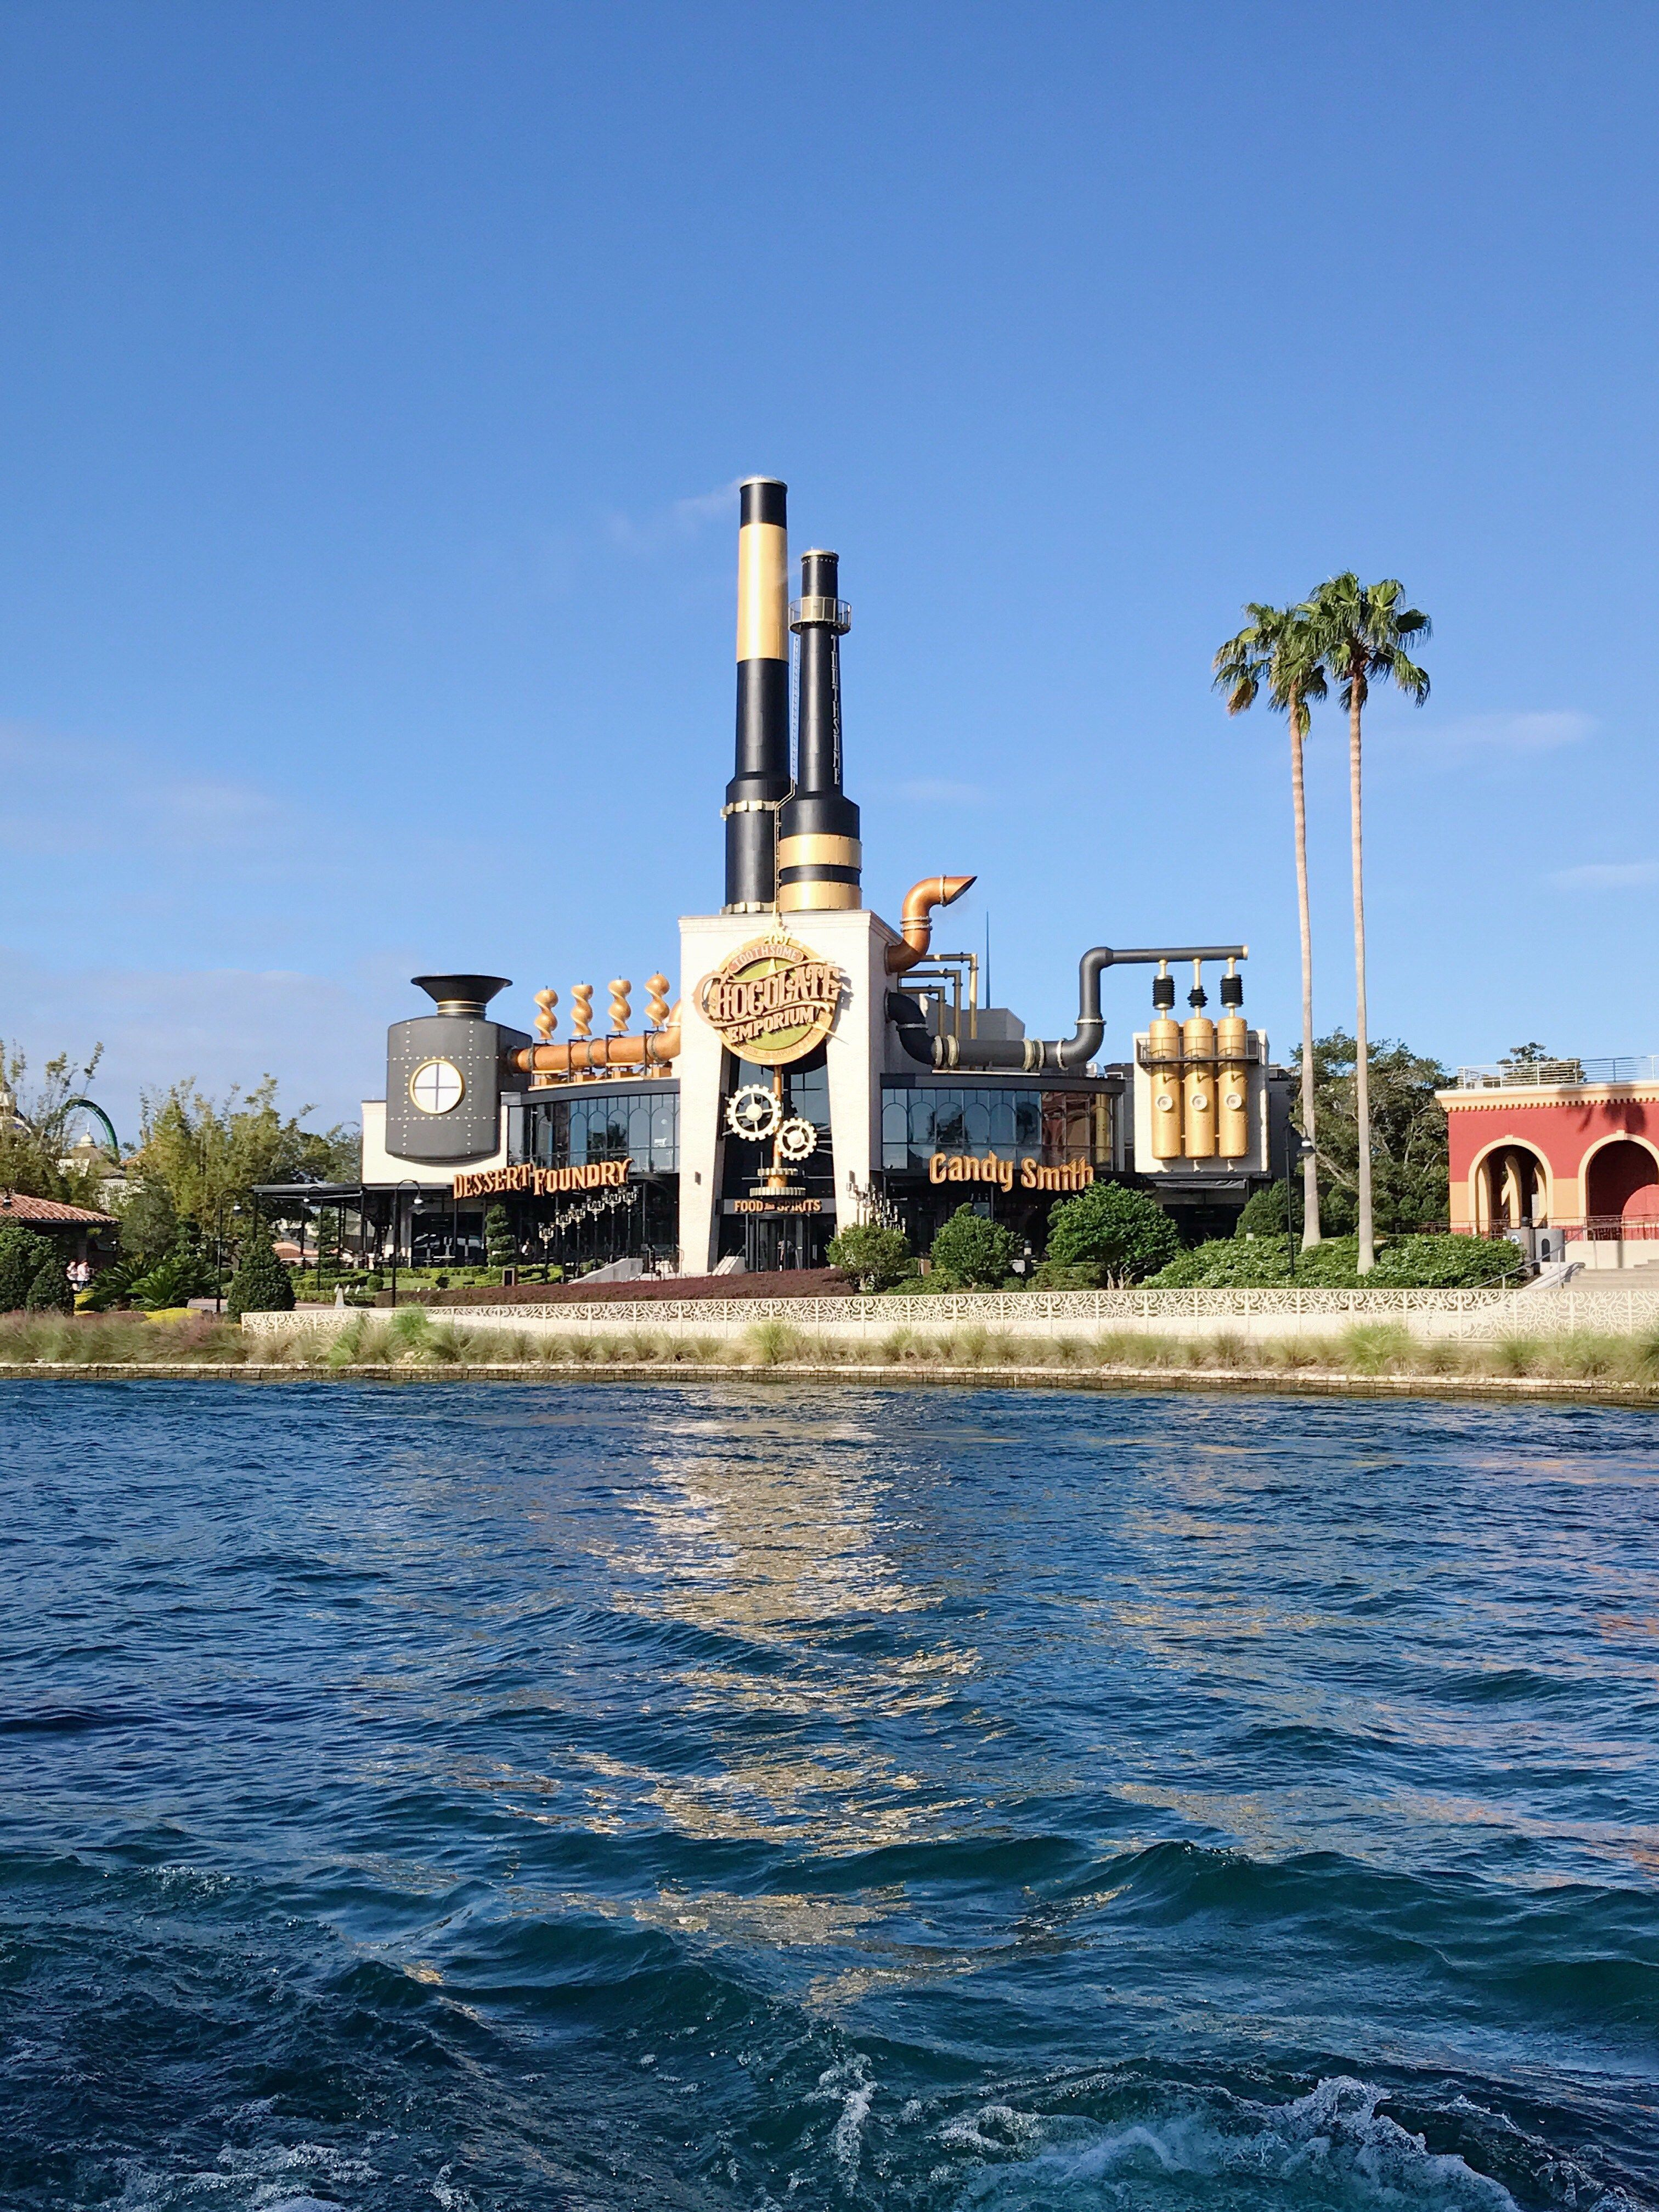 Where To Stay Eat And The Best Things To Do At Universal Studios Orlando Orlando Vacation Attractions In Orlando Universal Studios Orlando